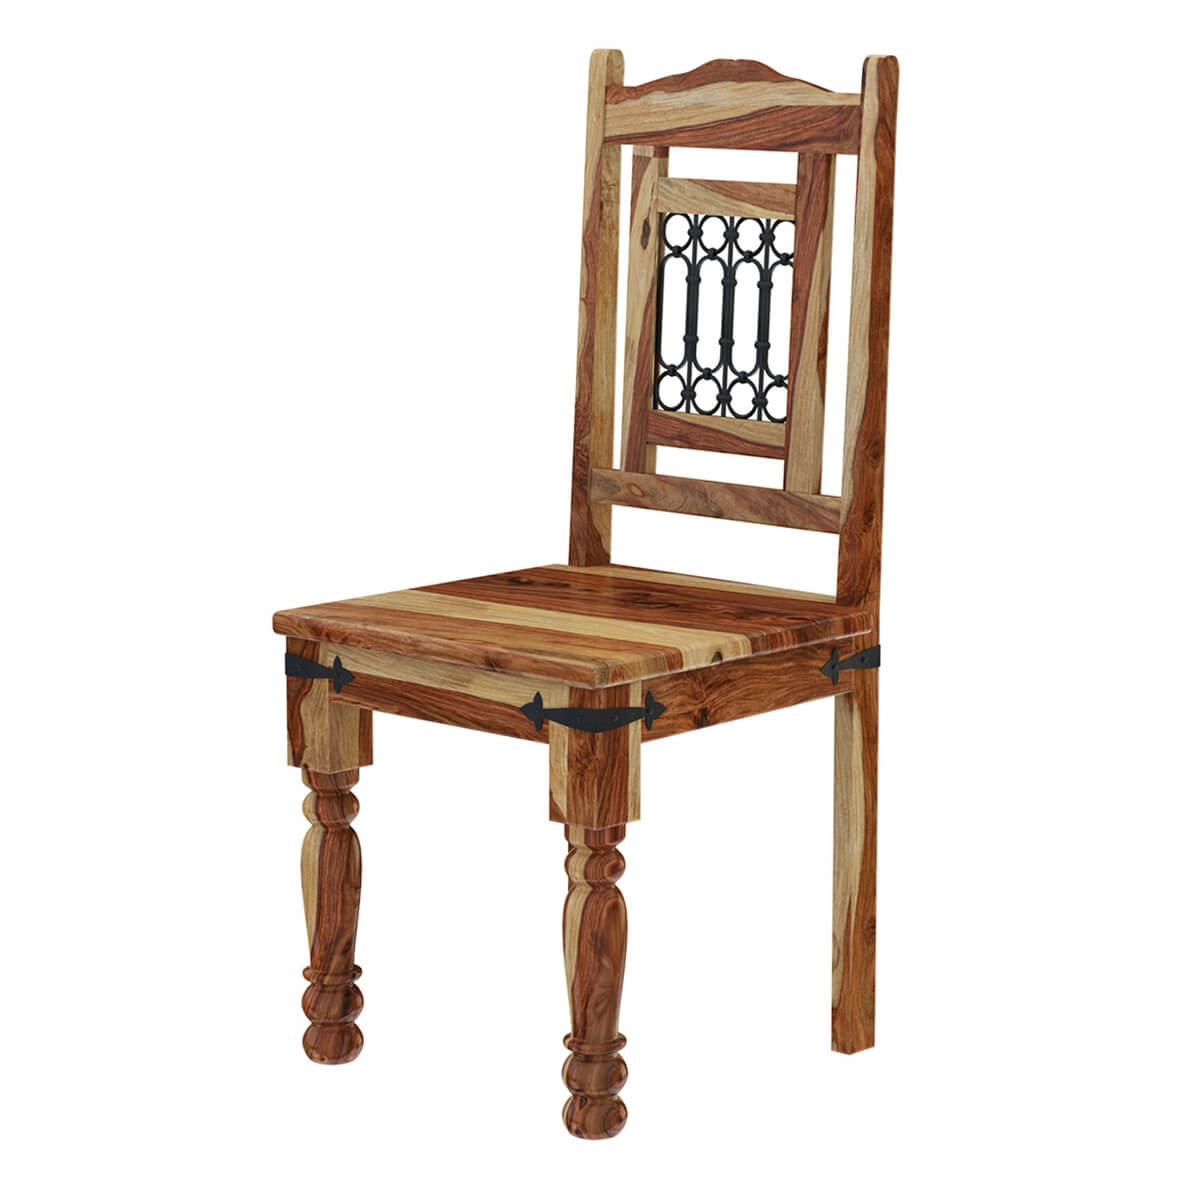 Unfinished Dining Room Chairs Vandana Solid Wood And Wrought Iron Rustic Kitchen Dining Chair